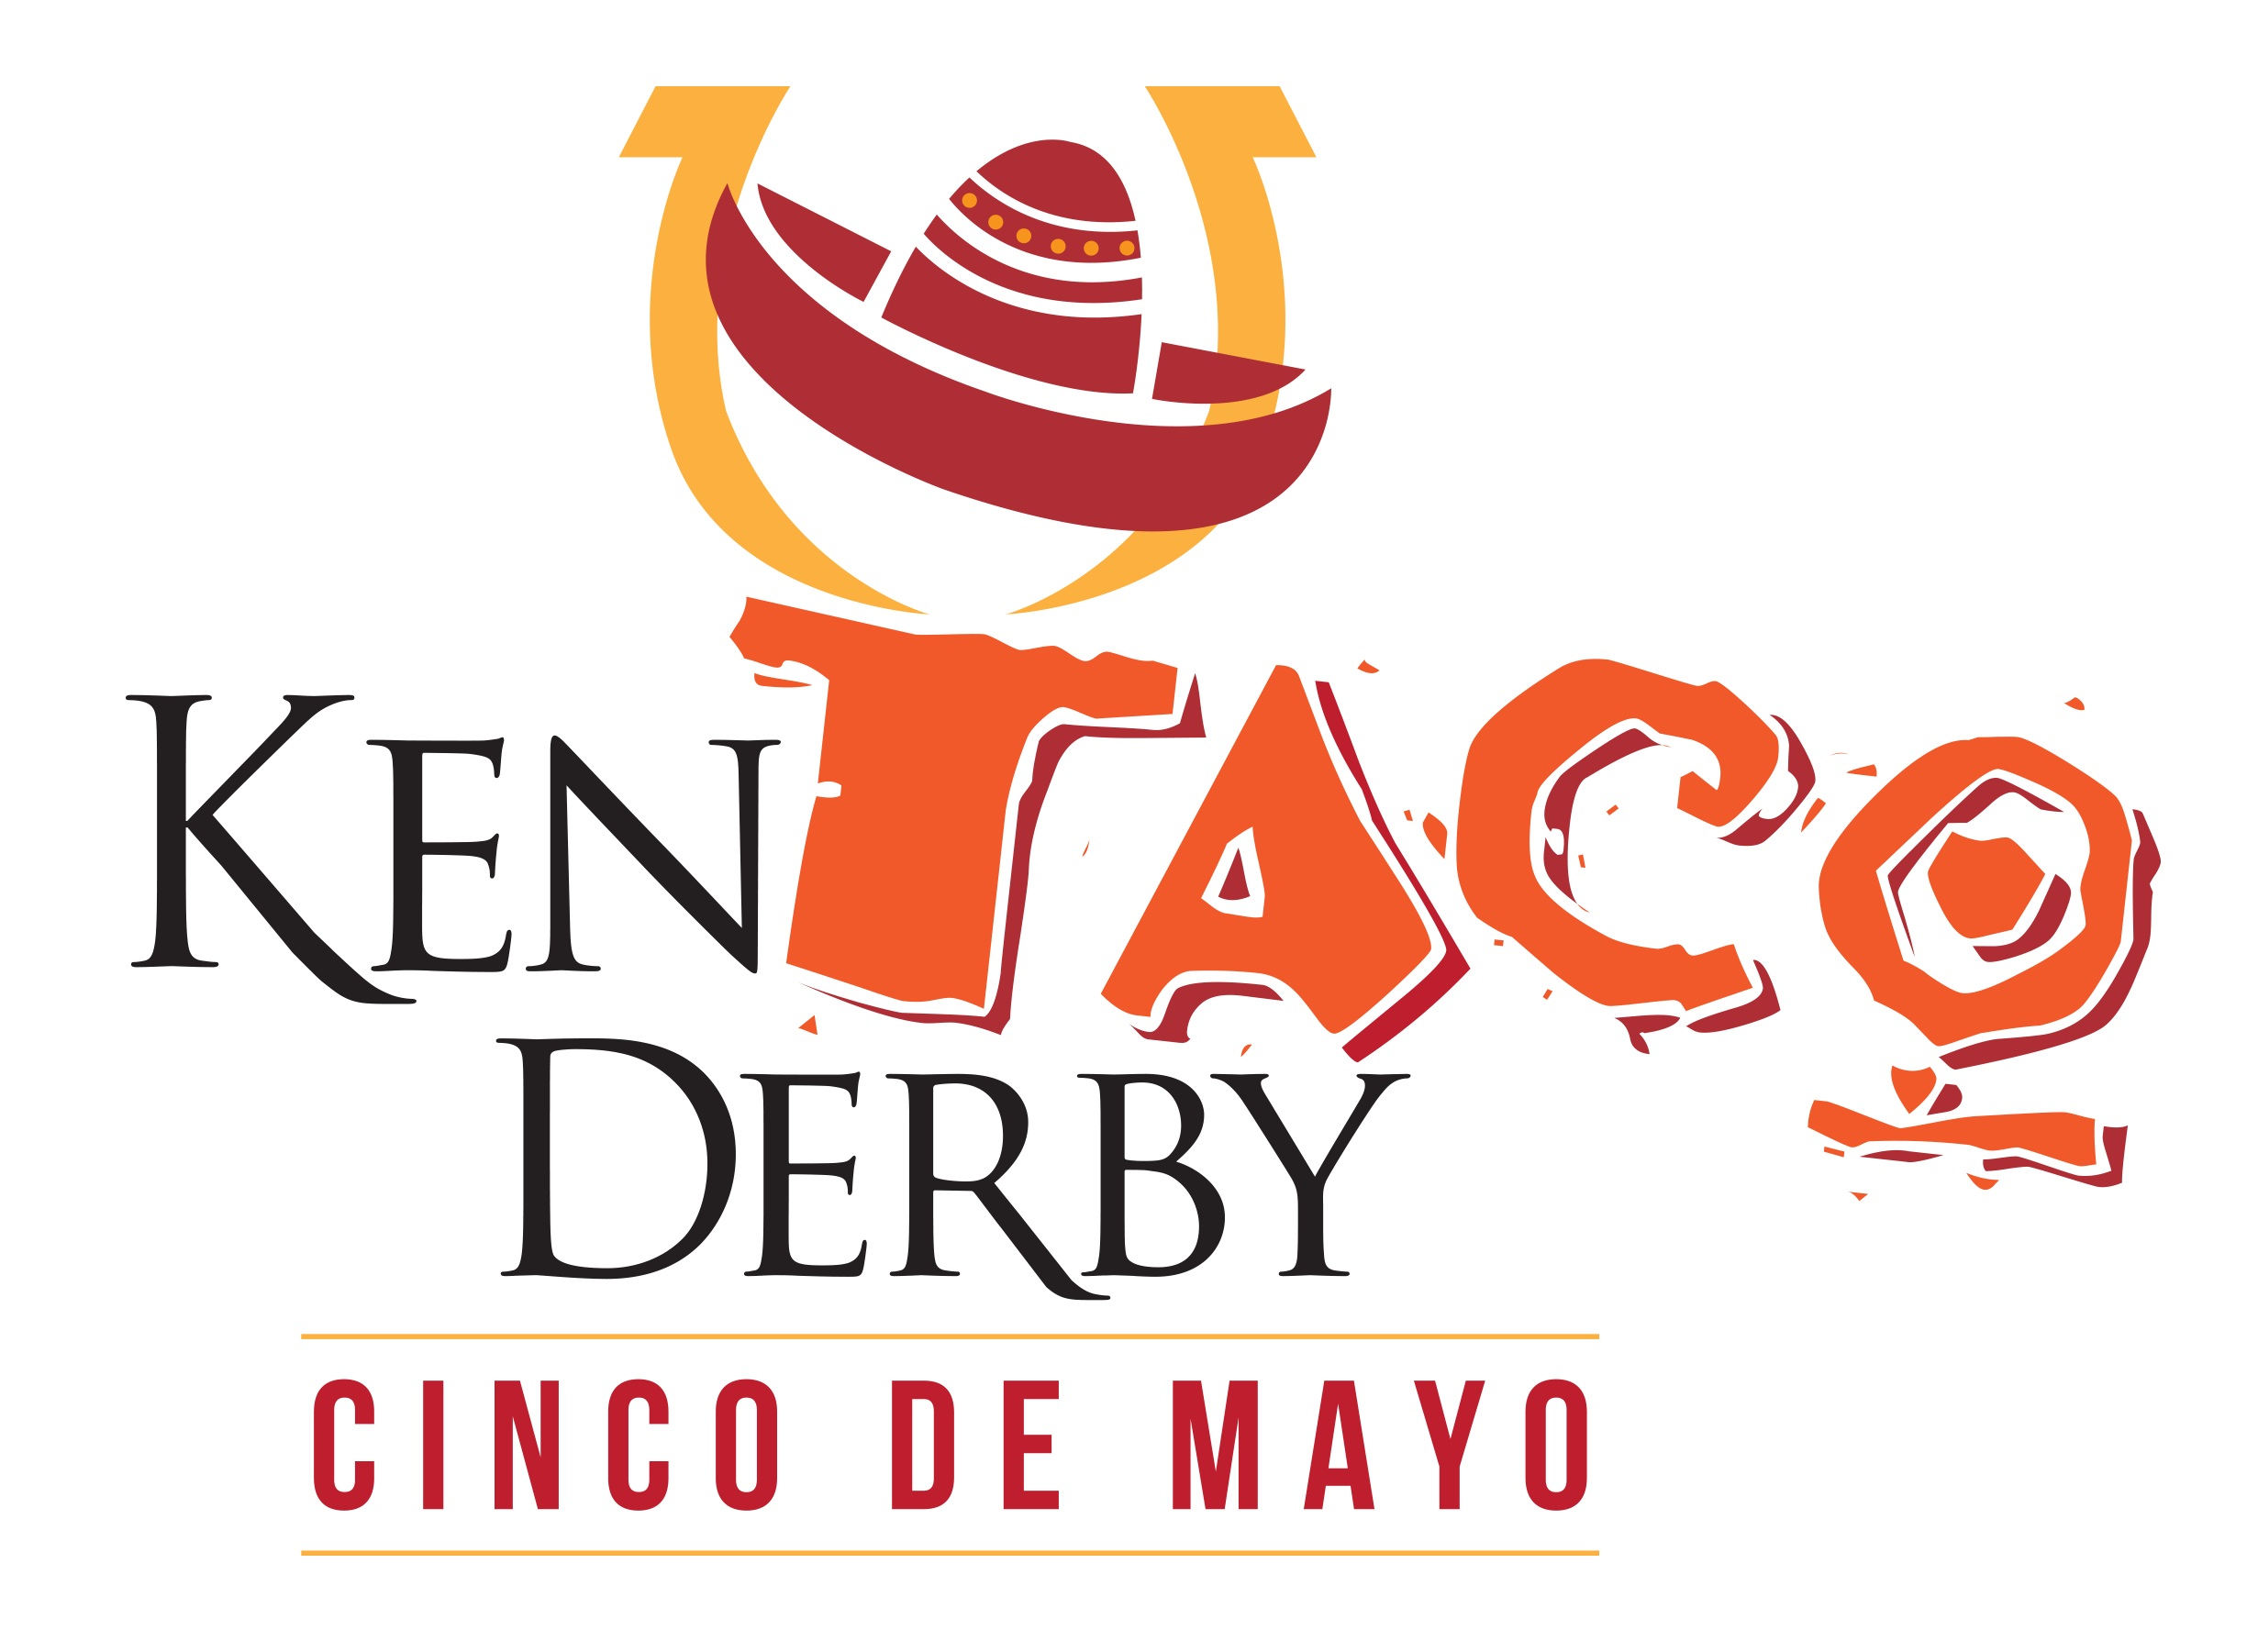 The Kentaco Derby - This annual event, is held at the Mississippi River Distilling Company, celebrates The Kentucky Derby and Cinco De Mayo all wrapped up in one fun day; complete with derby hat and sombrero contests, tacos, drawings, mint juleps, a derby viewing, and more!